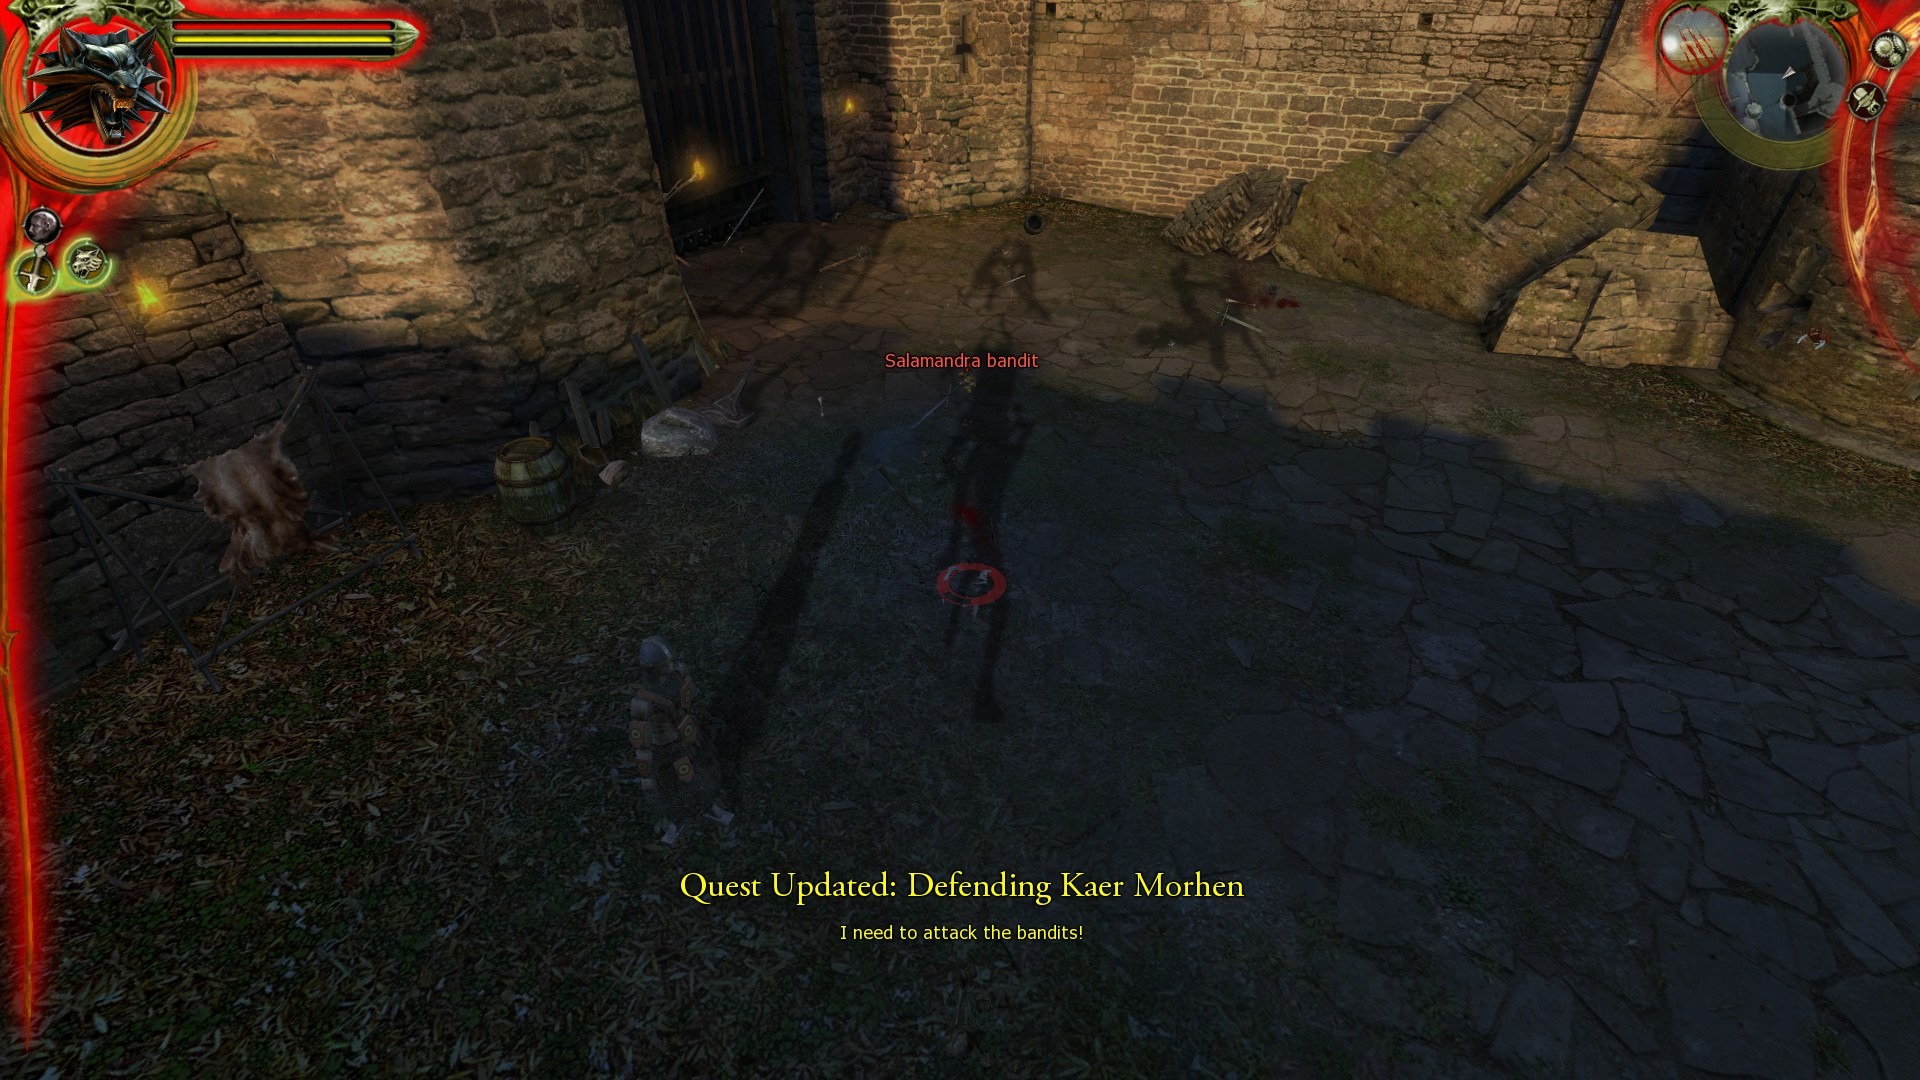 The Witcher 1 (20900) · Issue #255 · ValveSoftware/Proton